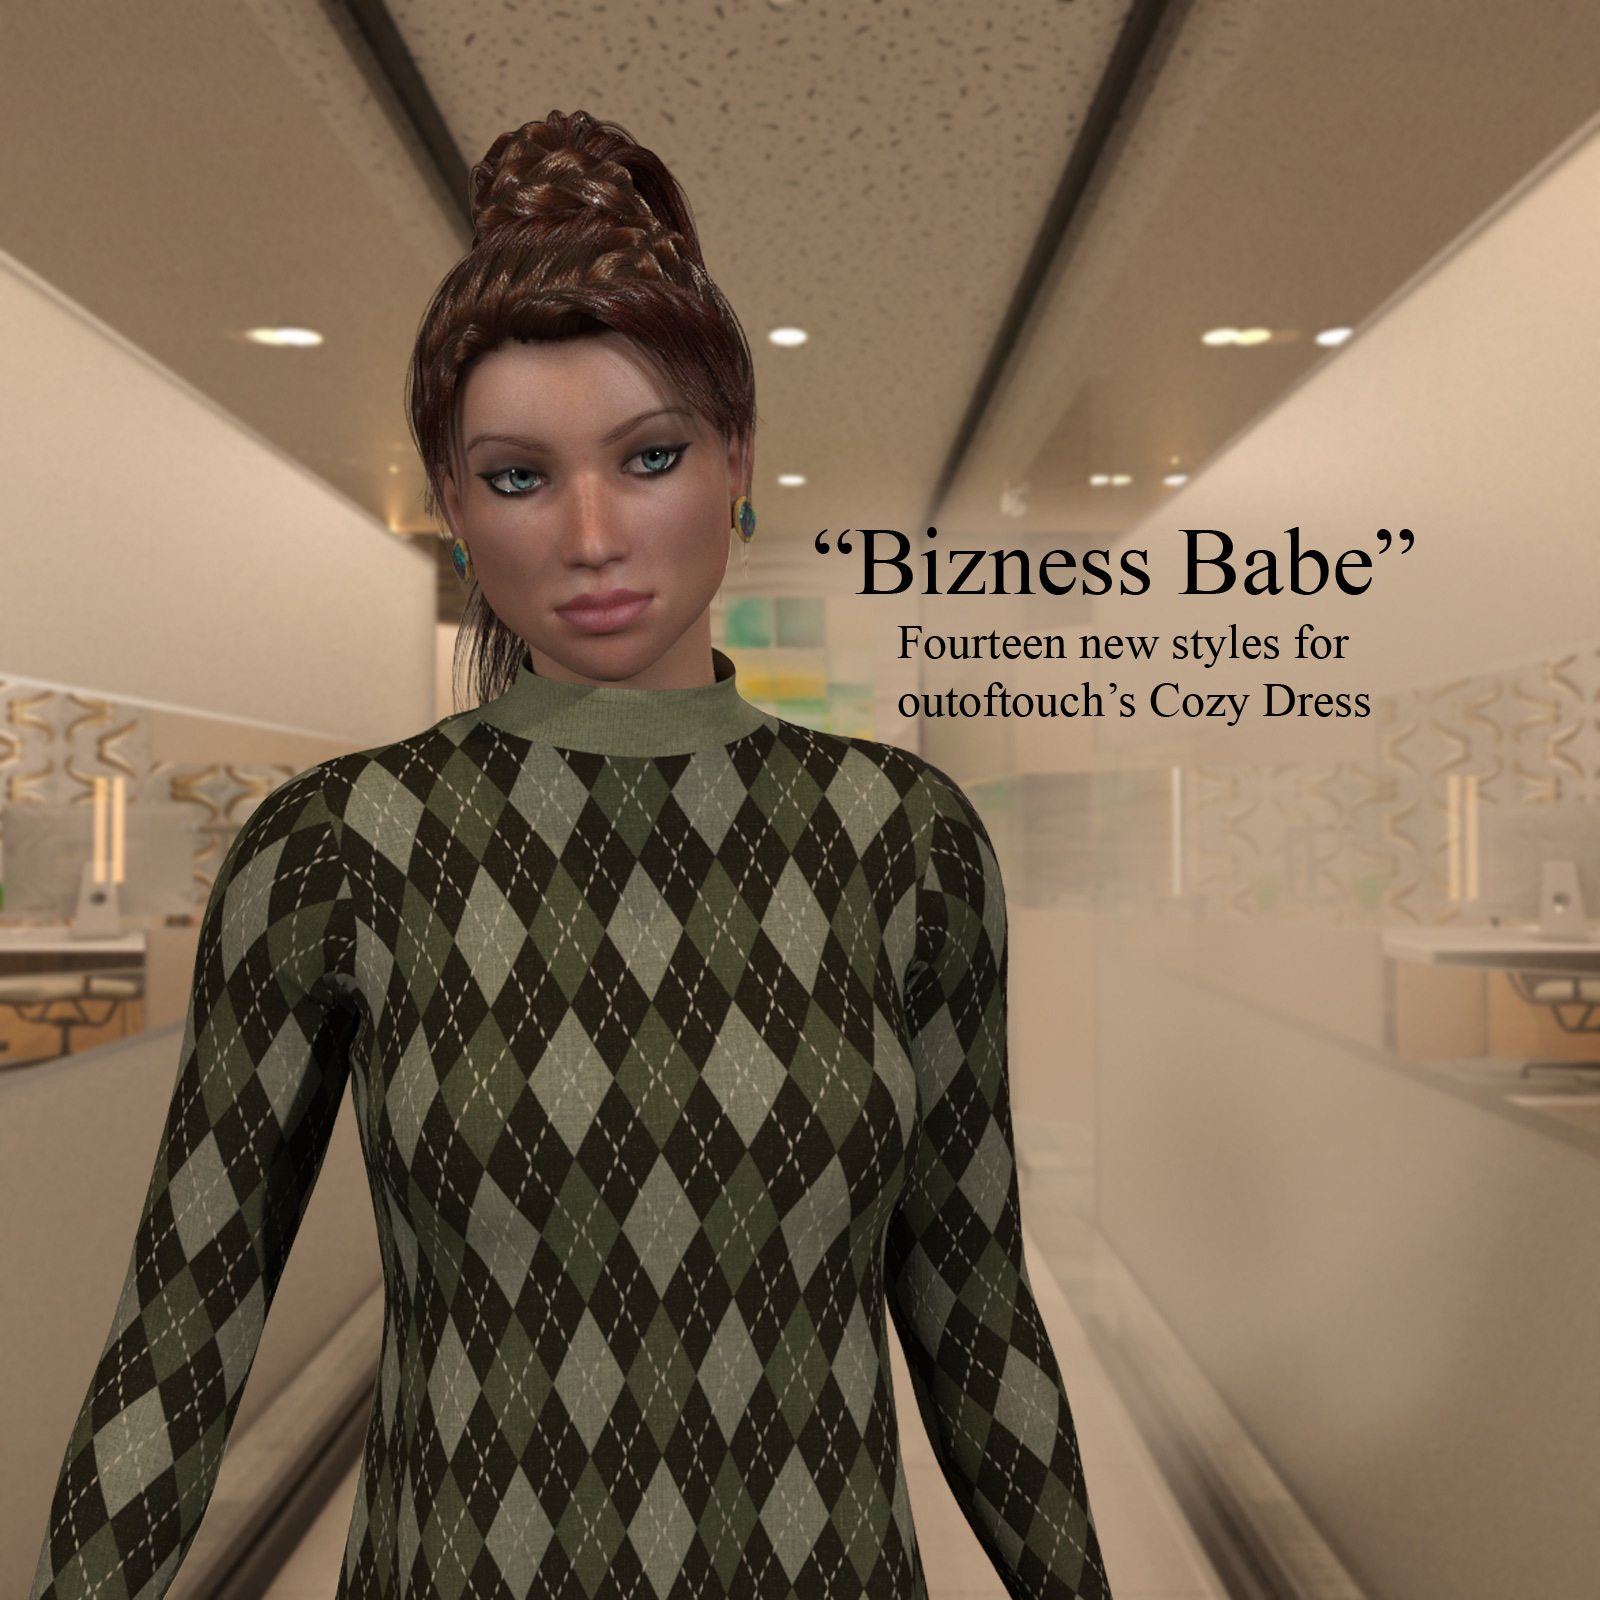 Bizness Babe for OOT's Cozy Dress For LaFemme